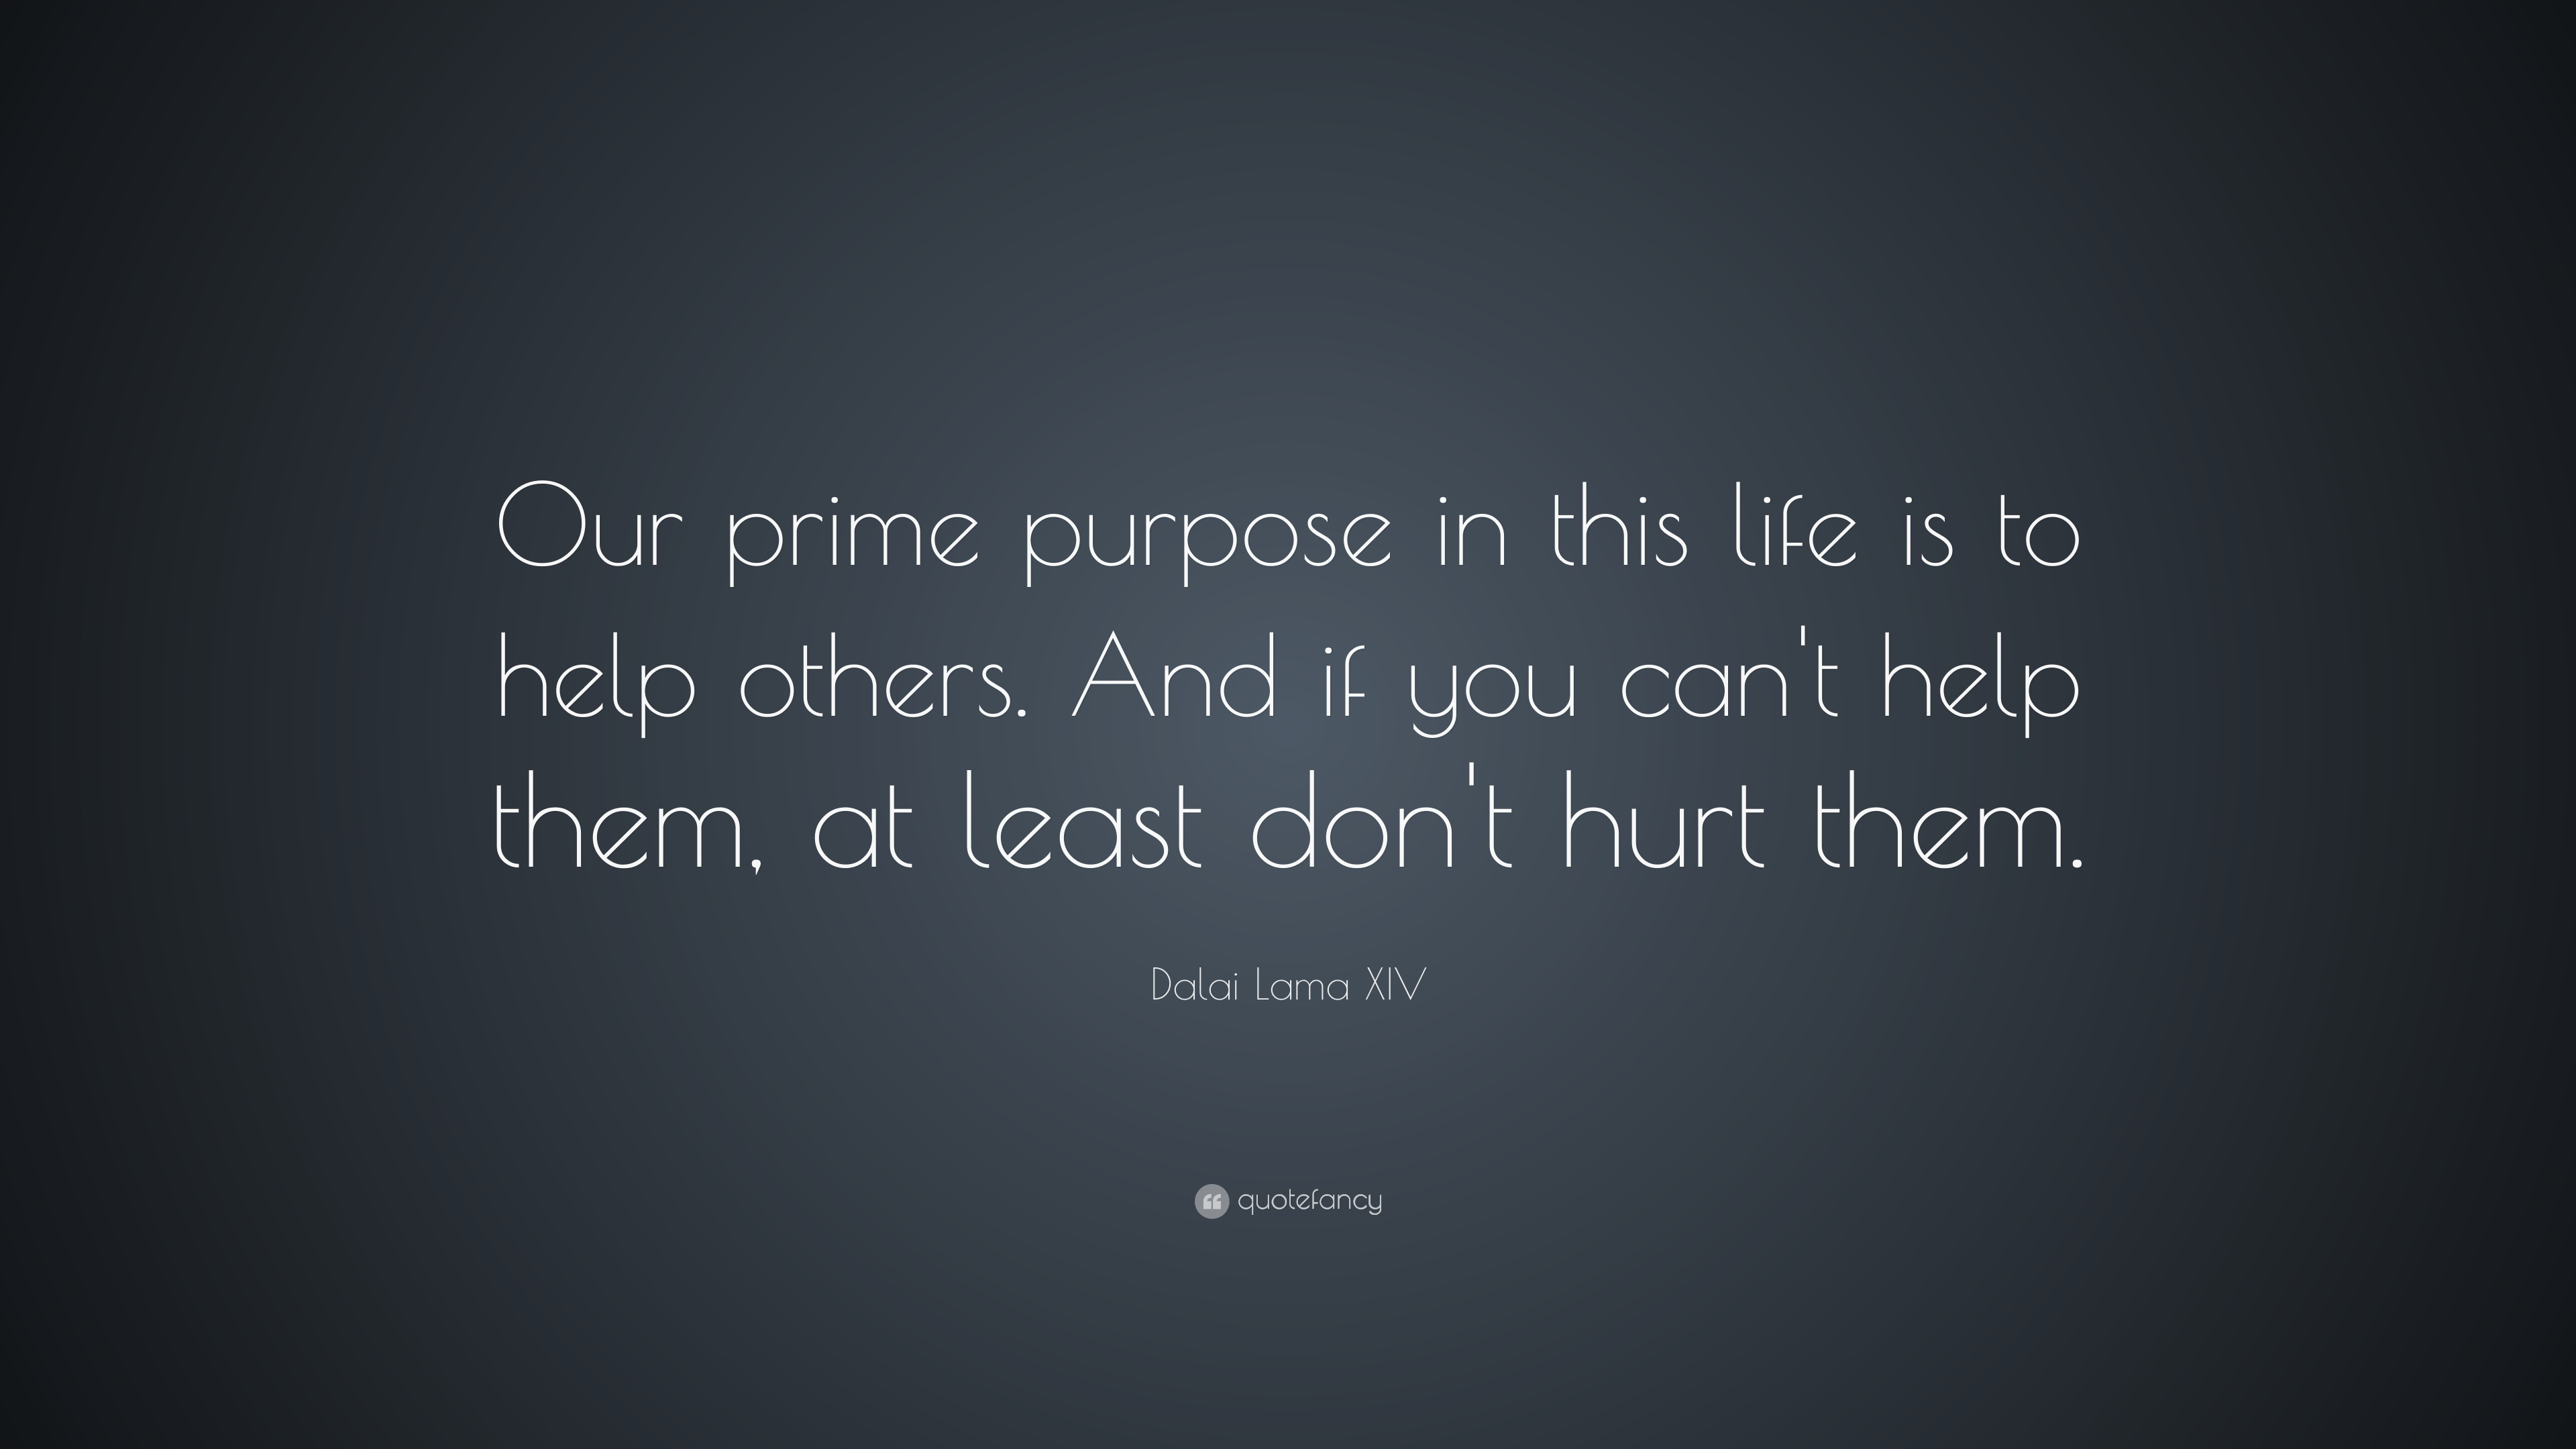 Dalai Lama Quotes Life Help Others Dalai Lama Quote  Inspiring Quotes And Words In Life